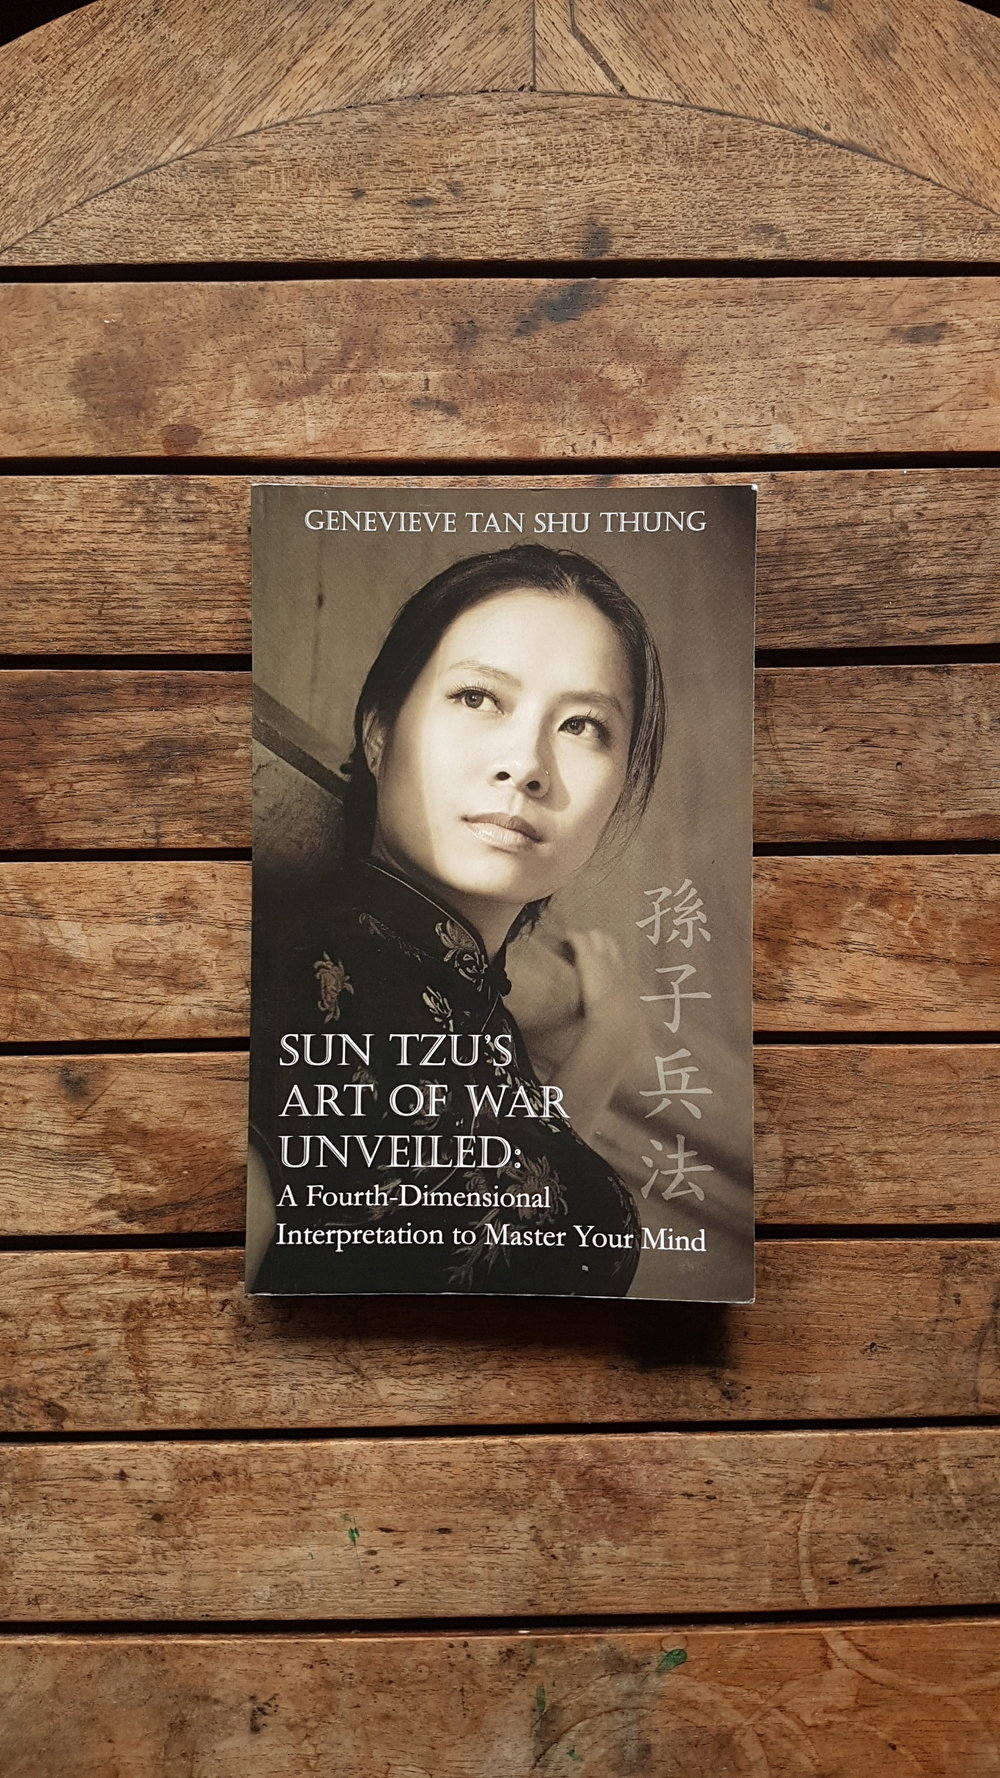 Sun Tzu's Art of War Unveiled: A Fourth-Dimensional Interpretation to Master Your Mind   by Genevieve Tan Shu Thung